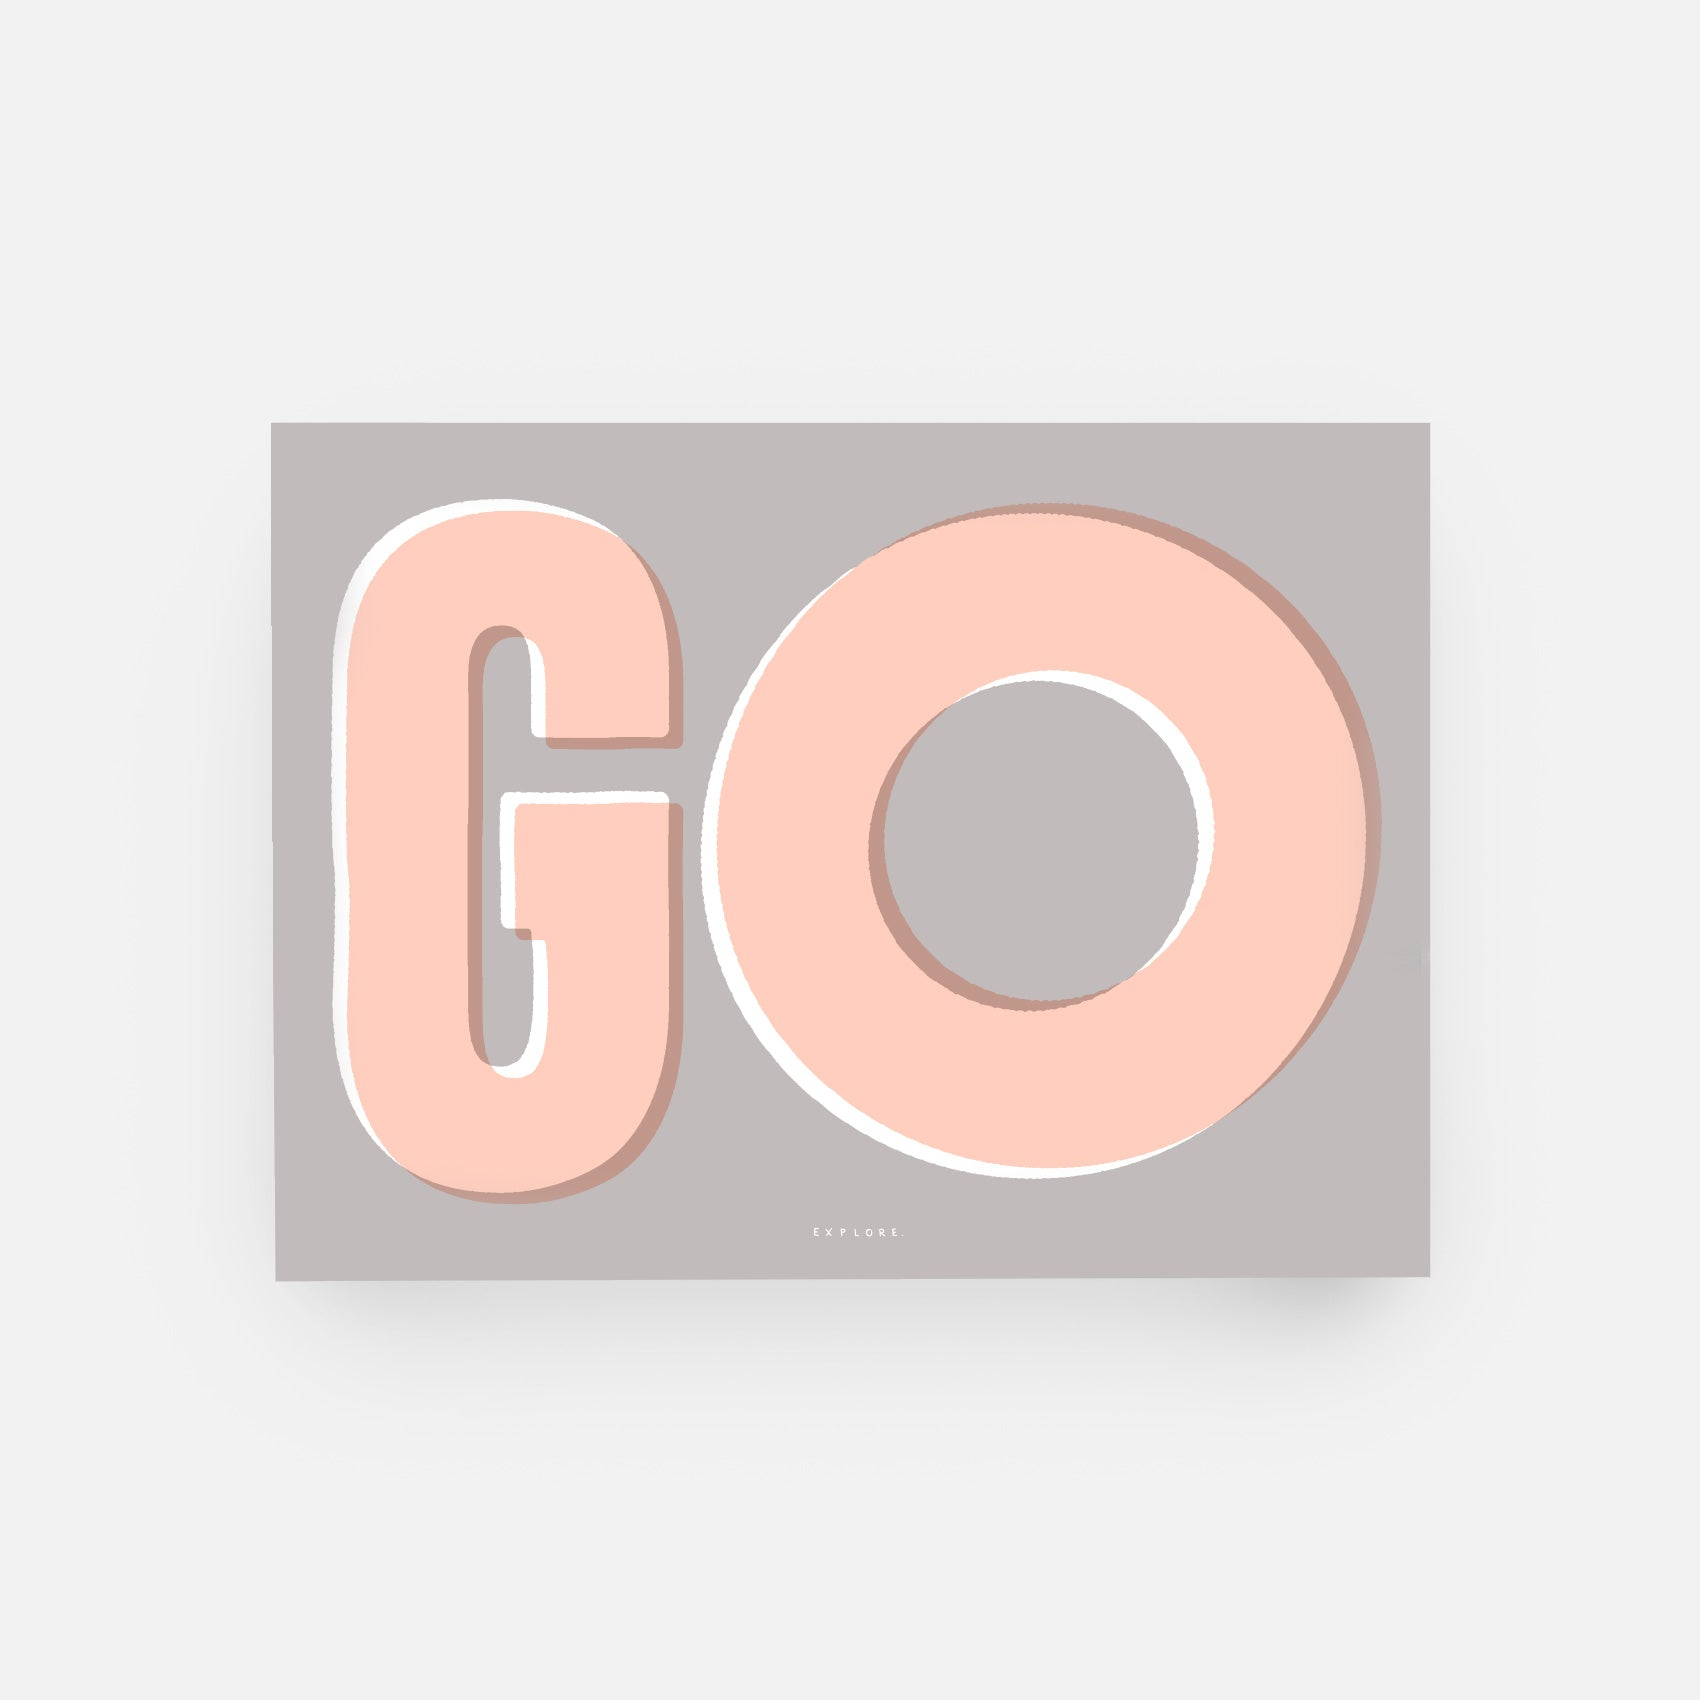 Unframed 'Go explore' wall print in Grey, Peach and White